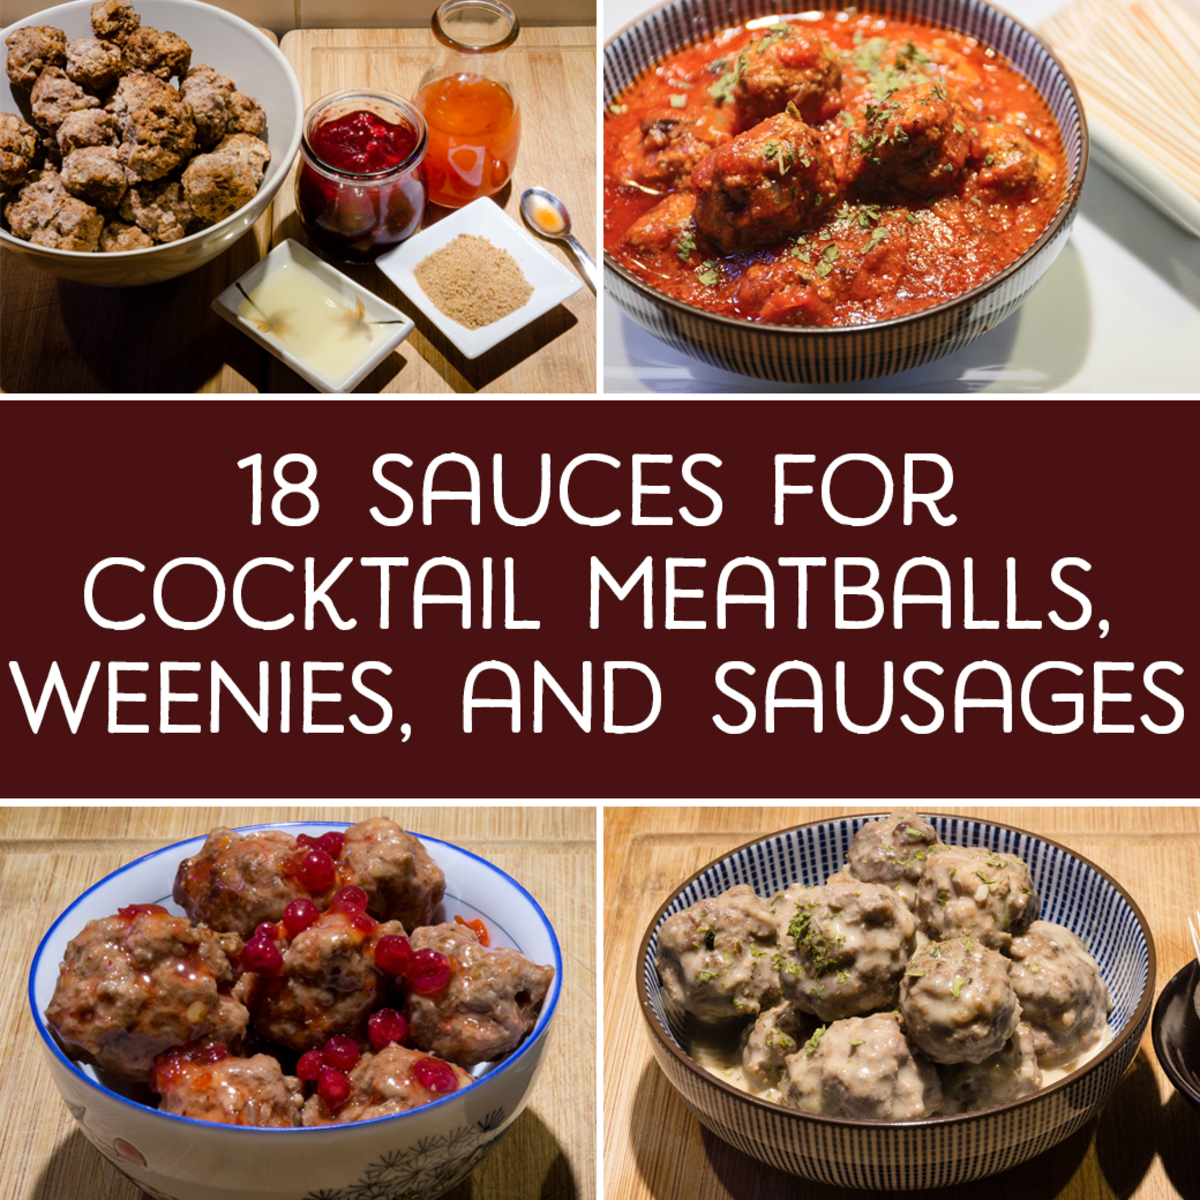 18 Sauces for Cocktail Meatballs, Weenies, and Sausages